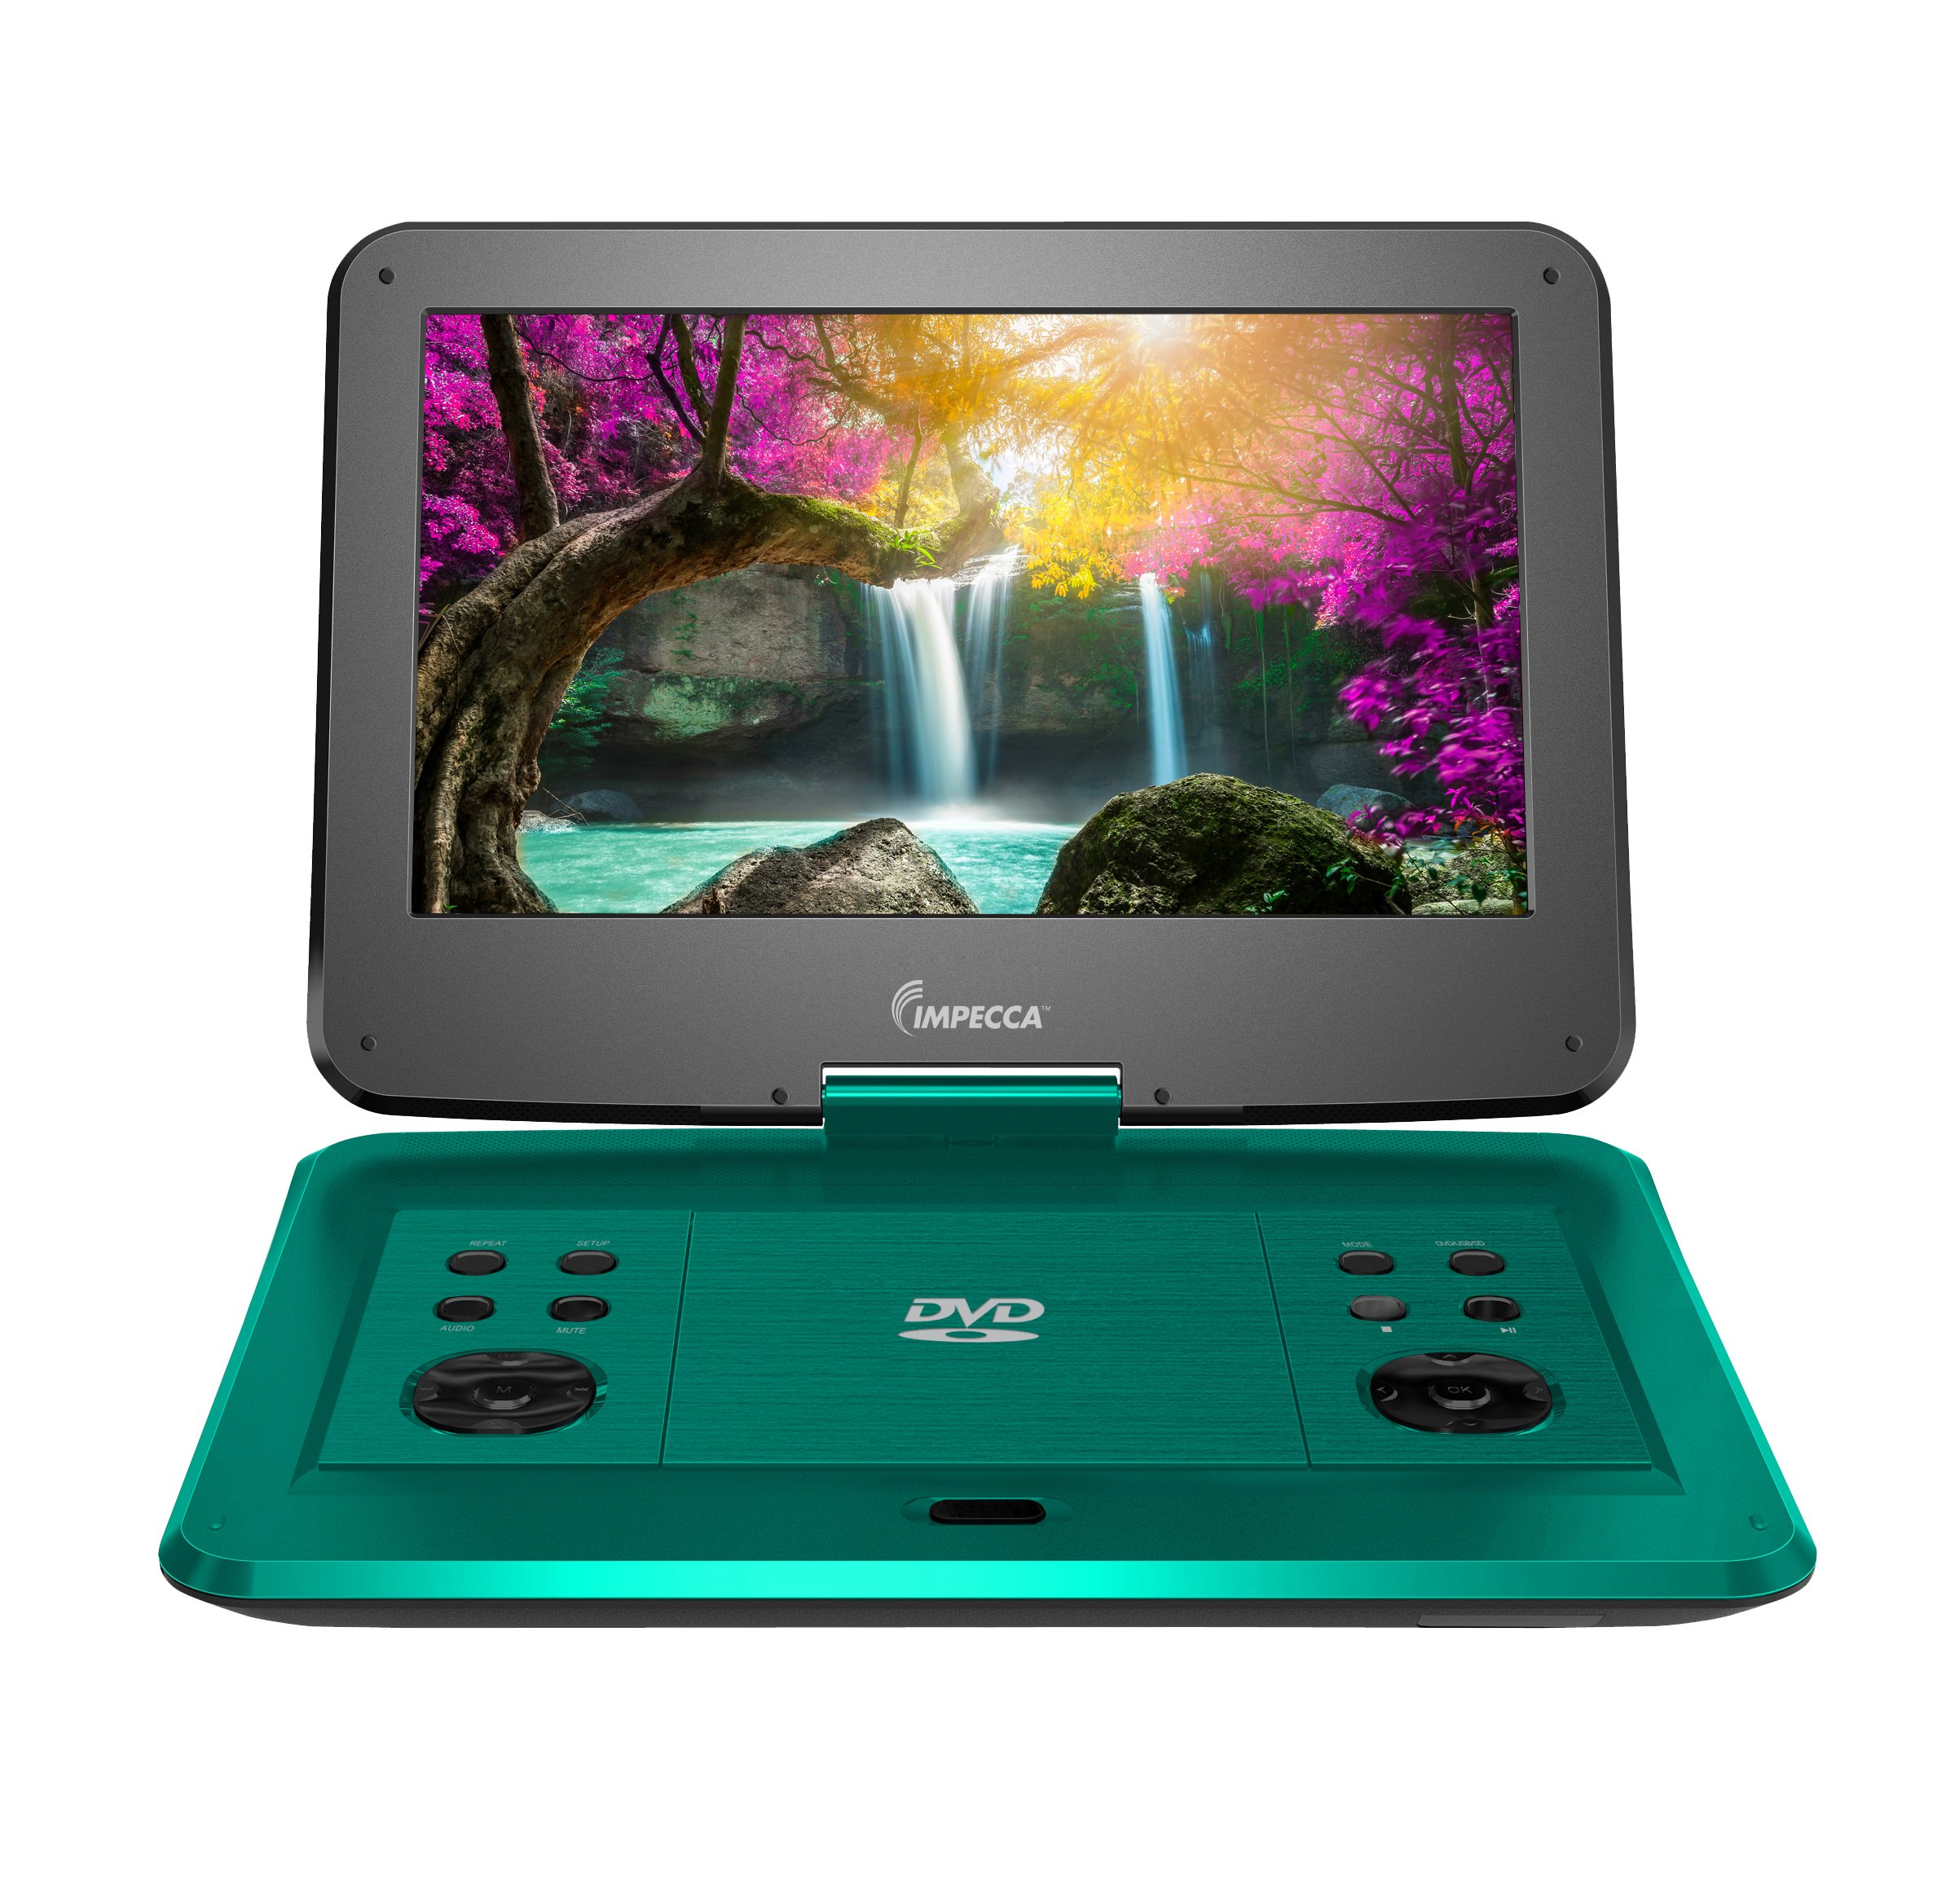 Impecca 13.3 Inch Portable DVD Player, Swivel Screen, 5 Hour Rechargeable Battery, with USB/SD Card Reader, And Deluxe Travel Bag, Teal (DVP1330T) by Impecca